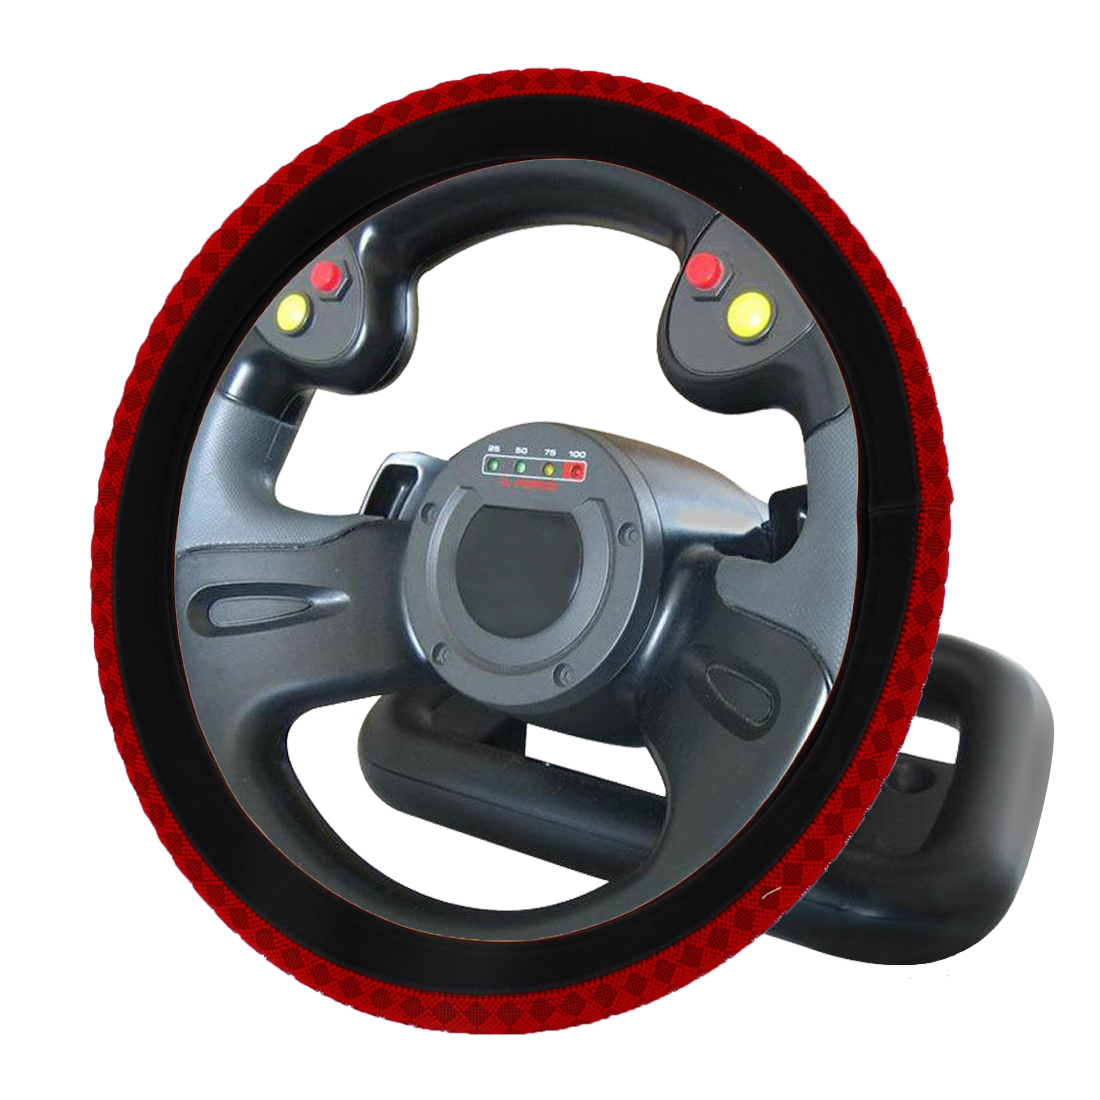 38cm Dia Red Rhombus Pattern Nylon Coated Steering Wheel Cover for Car